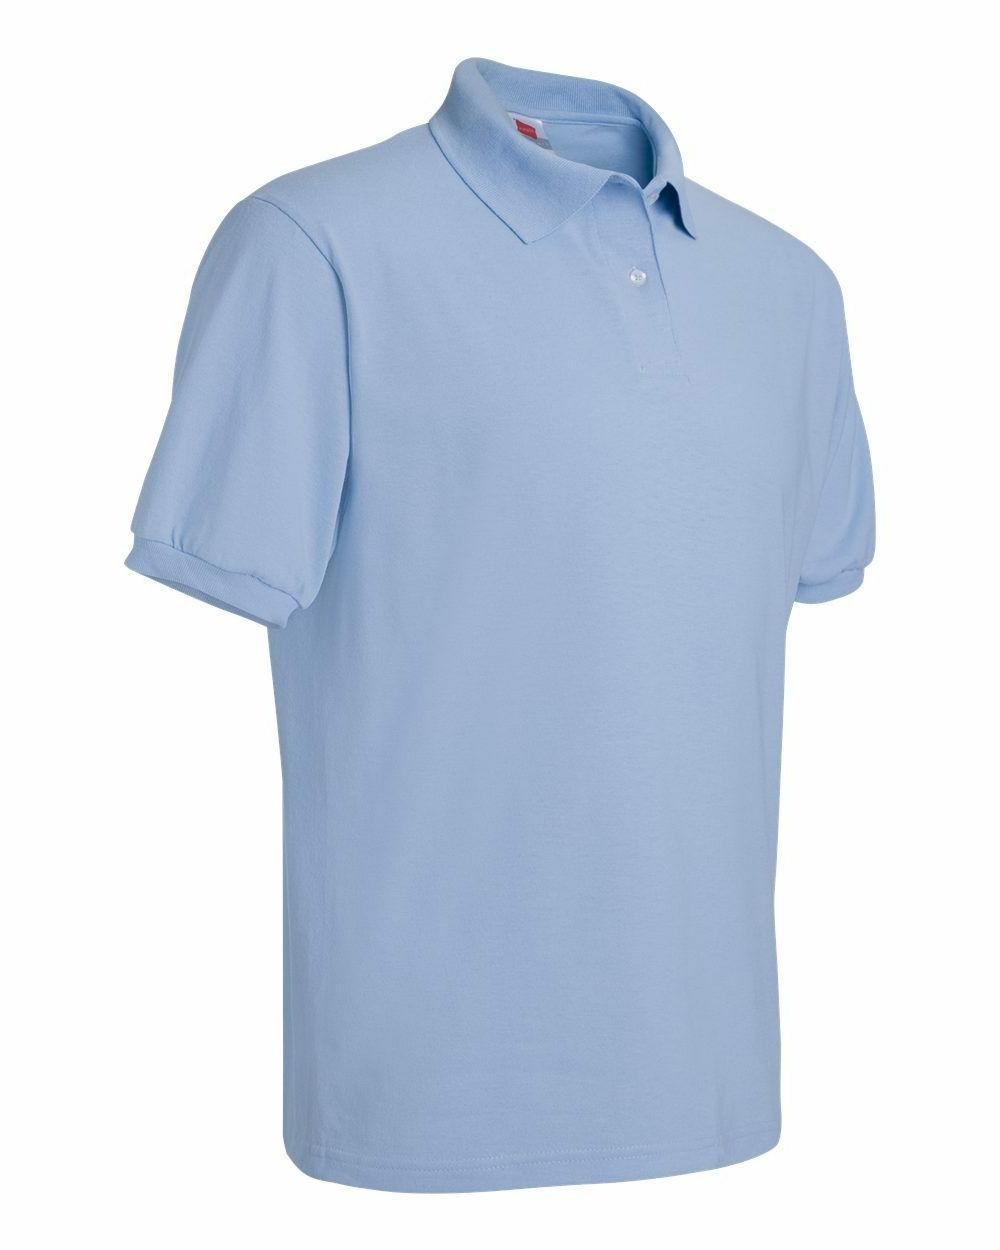 Hanes Tee Blended Jersey Polo golf shirt from S-6XL 054X